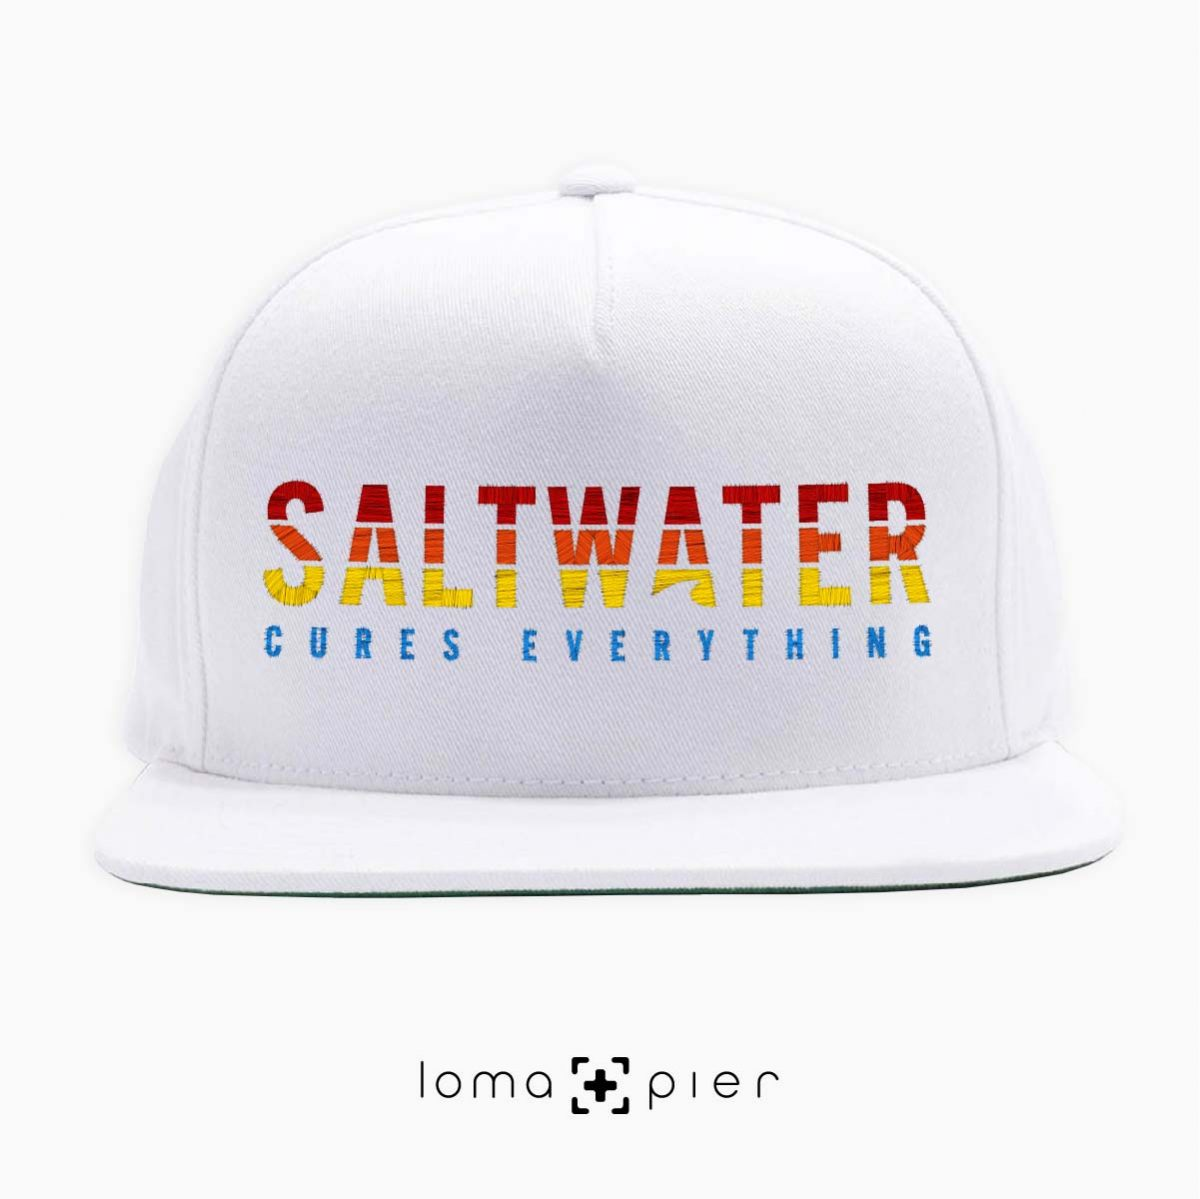 SALTWATER CURES EVERYTHING white classic snapback hat by loma+pier hat store